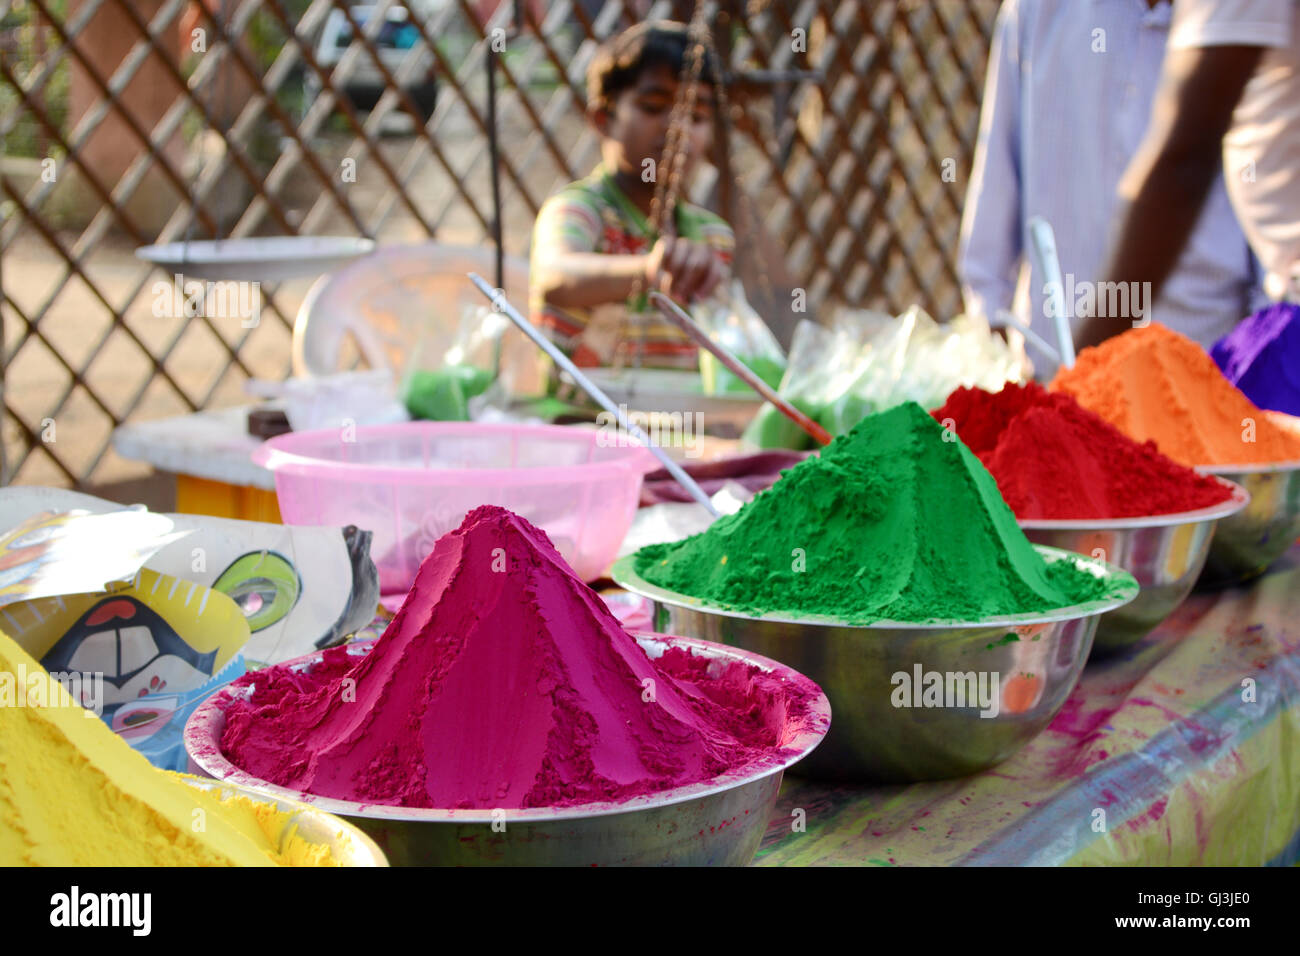 Colors of India. A boy is selling colorful powder in the market. Child labor. - Stock Image